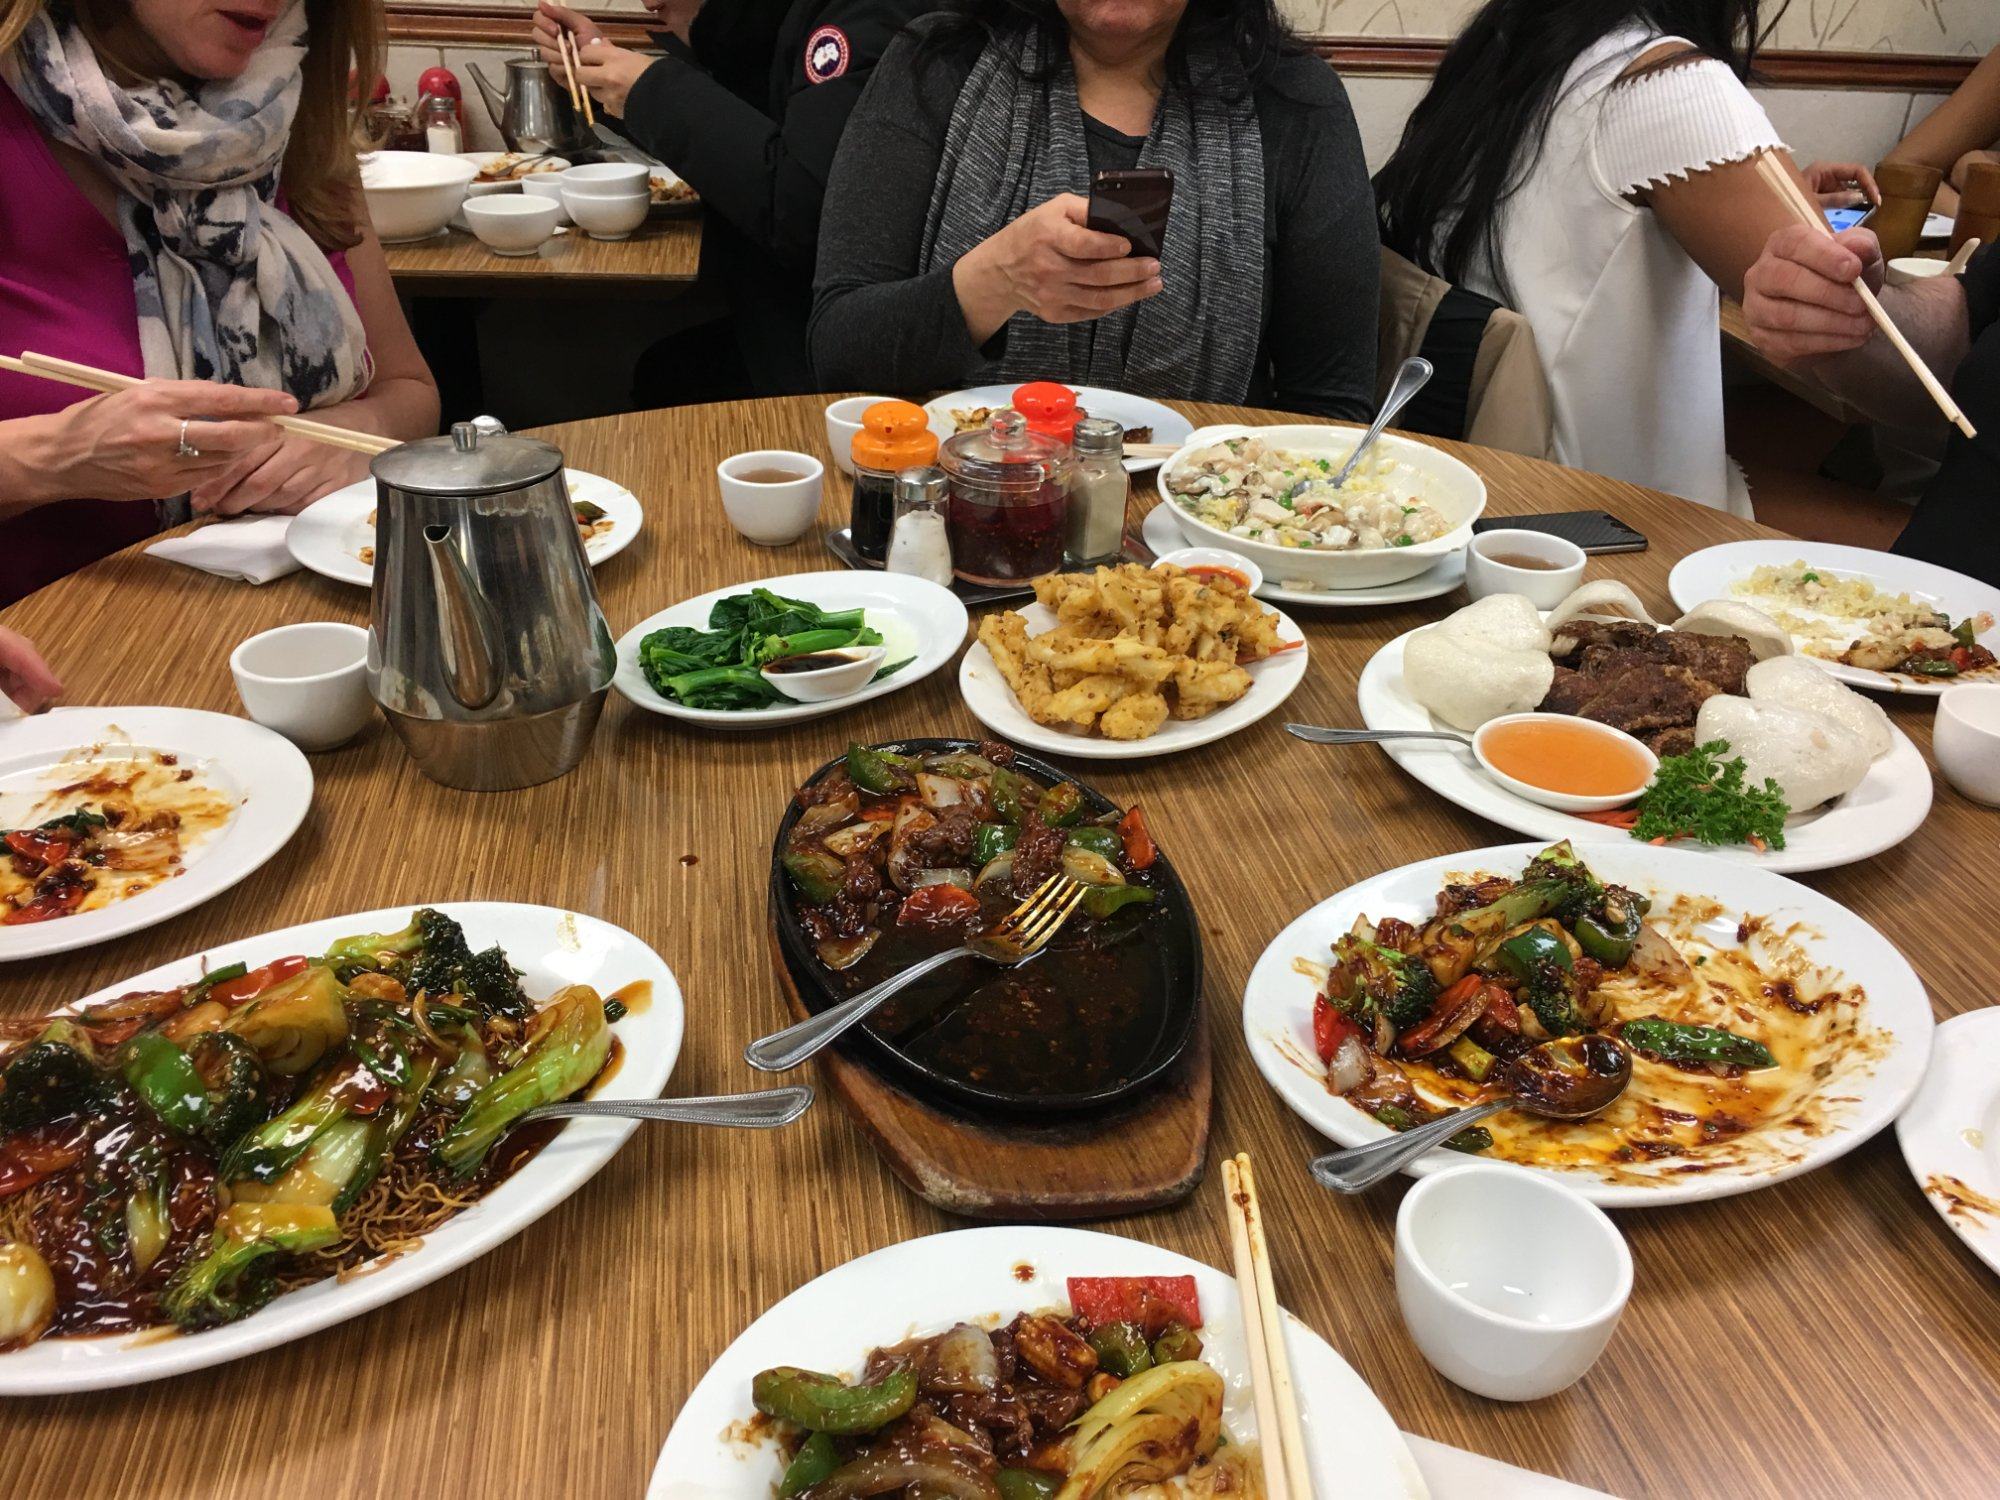 Cuisine Tours 13 Best Toronto Food Tours And Walking Tours To Take Full Guide